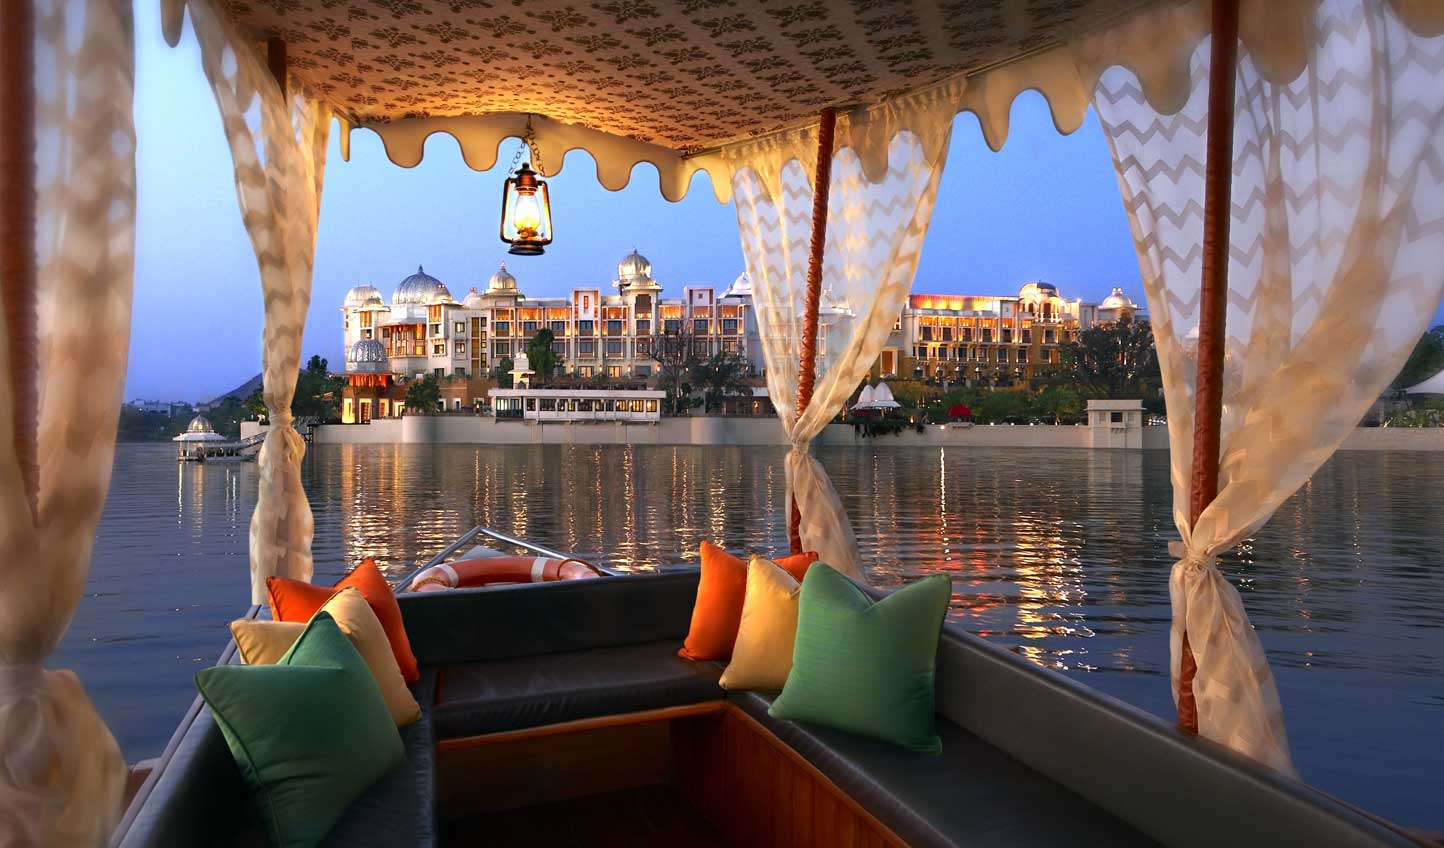 Arrive in style across the tranquil waters of Lake Pichola